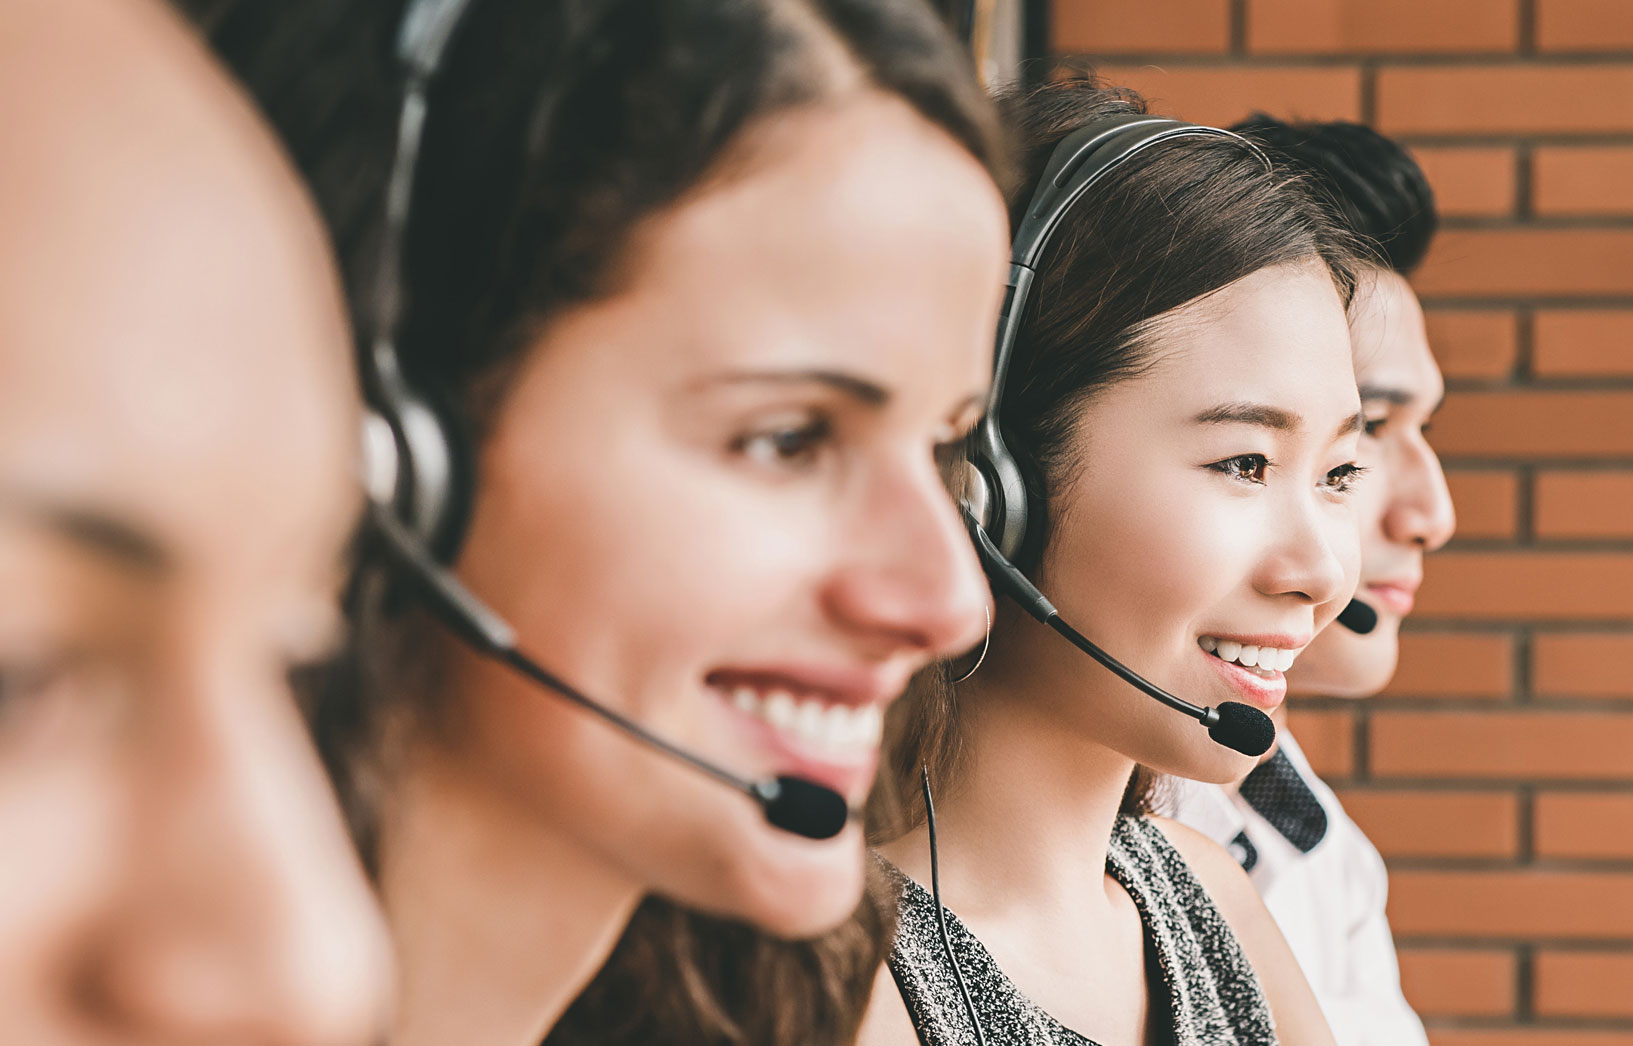 It takes effective utilization of these tools to ensure quality staffing at your contact center, ultimately putting customer experience as the top priority.